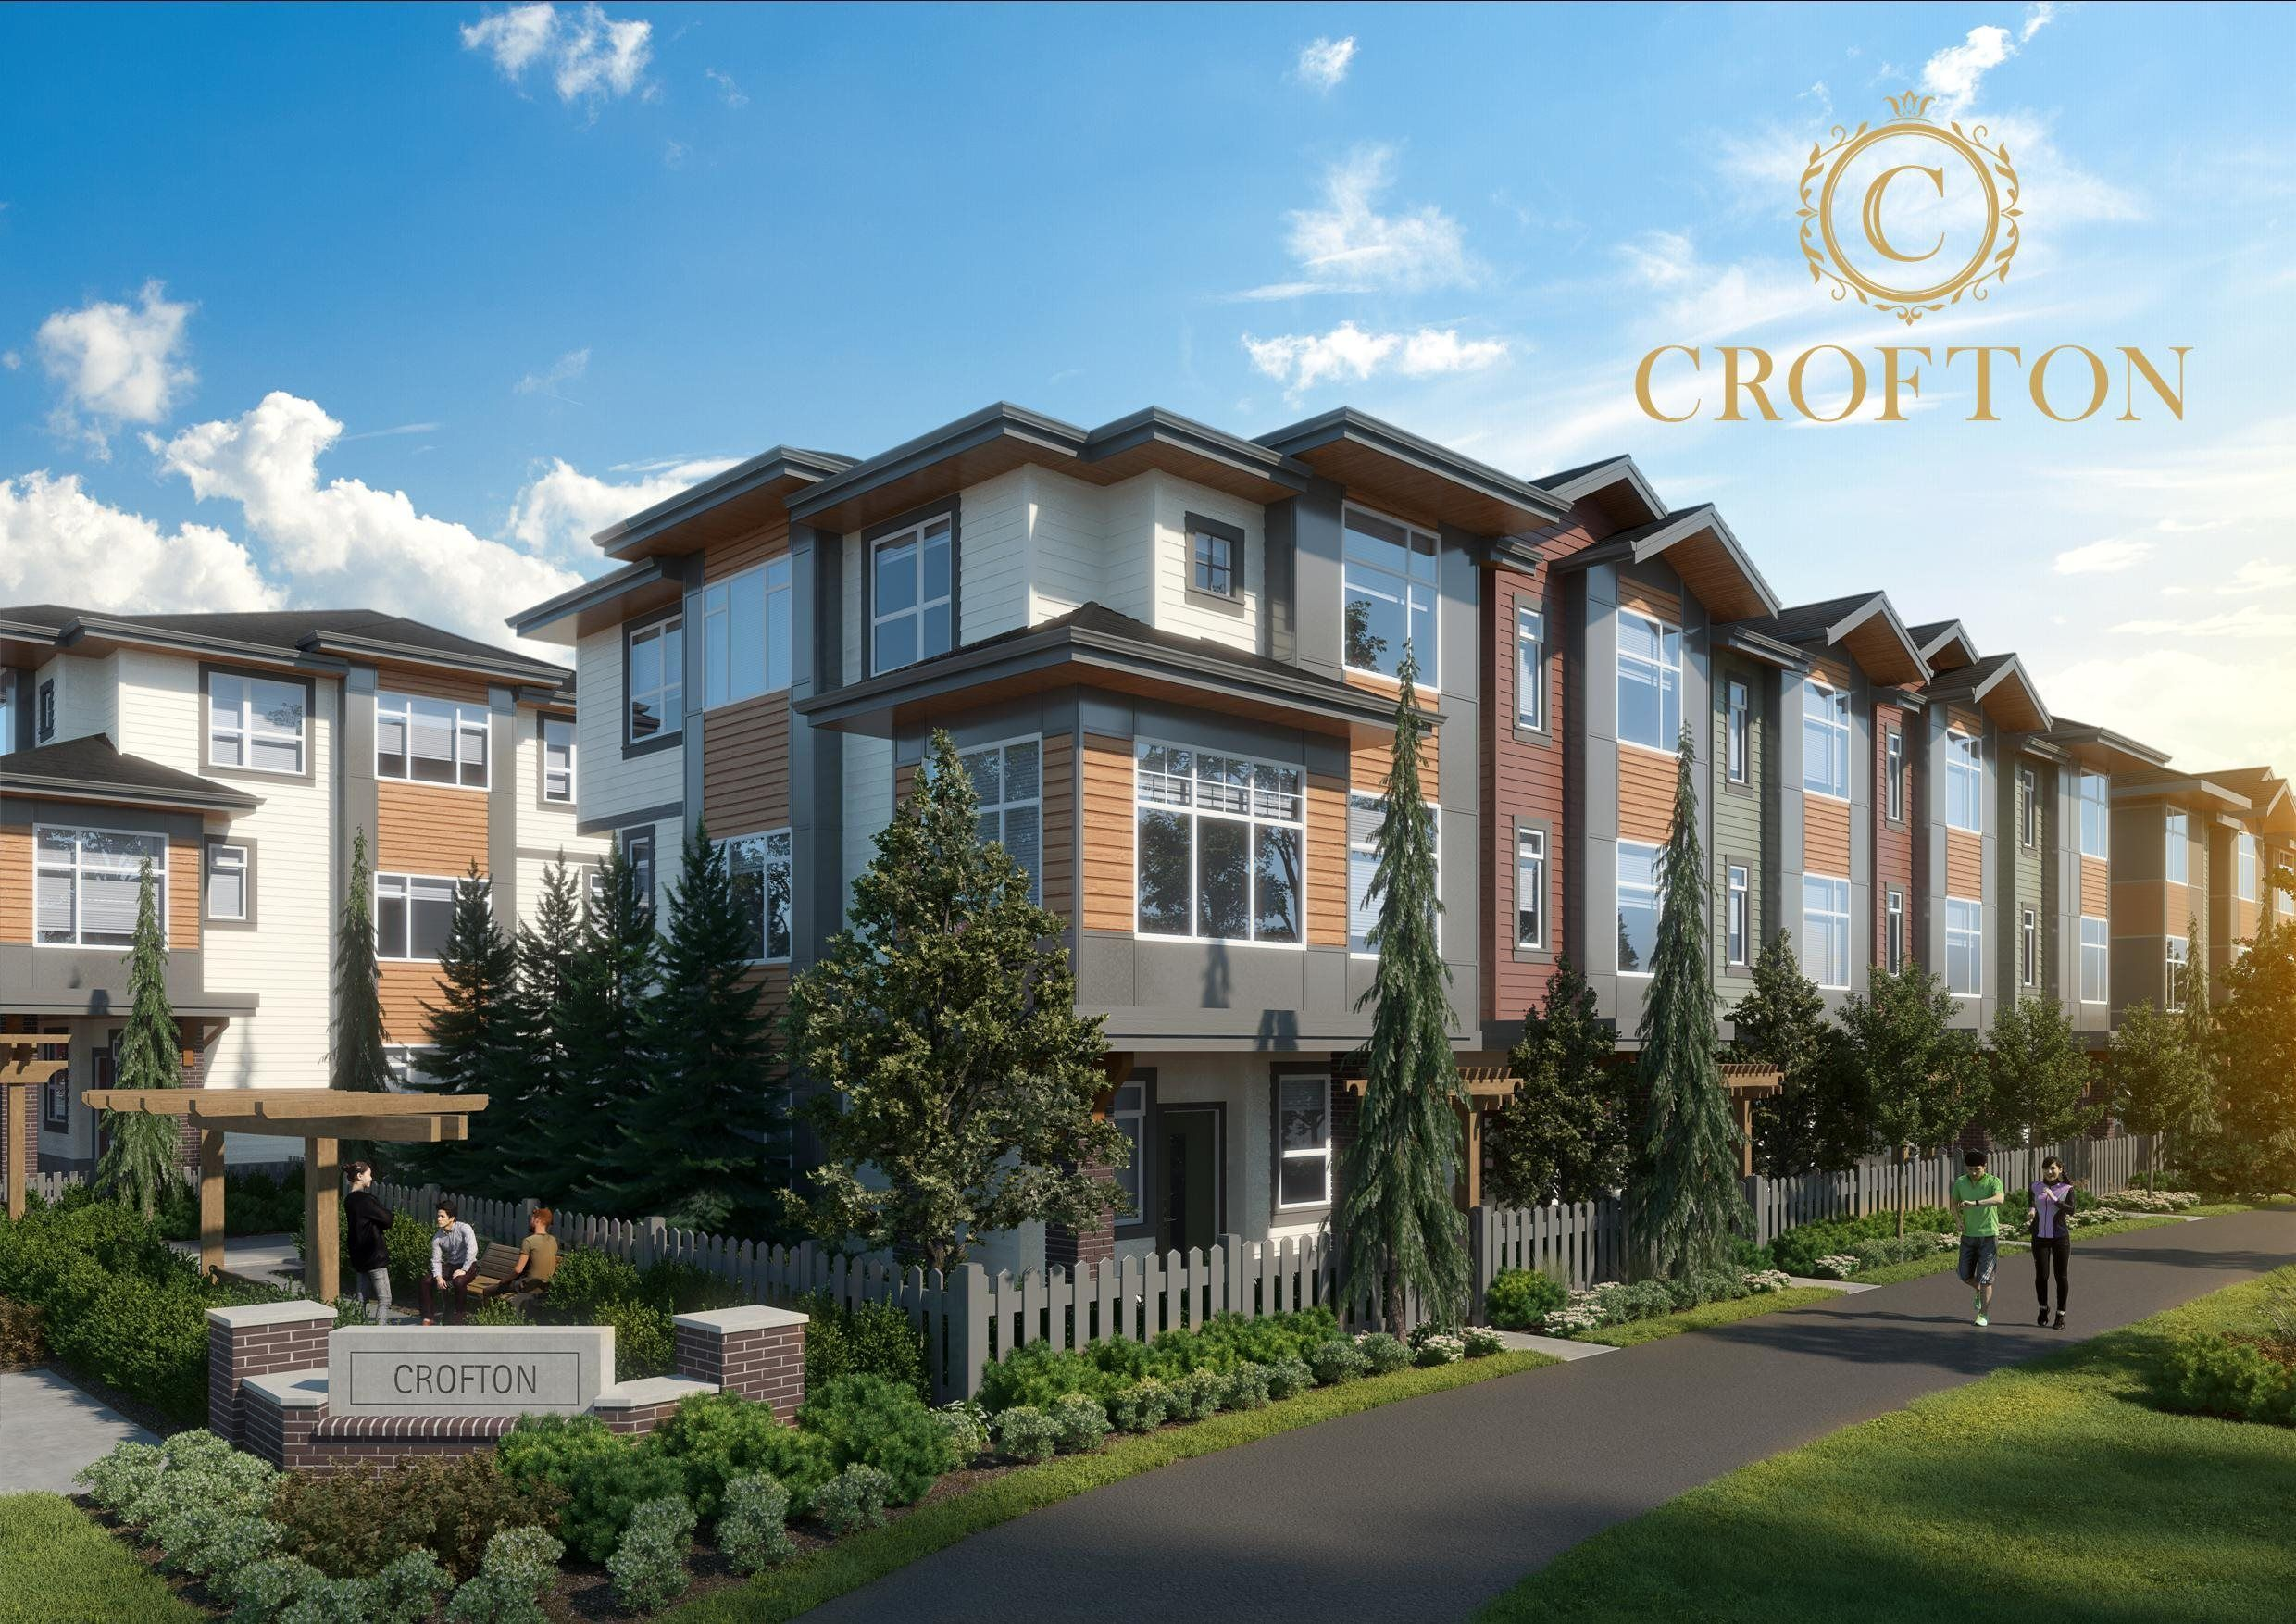 """Main Photo: 74 20763 76 Avenue in Langley: Willoughby Heights Townhouse for sale in """"CROFTON"""" : MLS®# R2620976"""